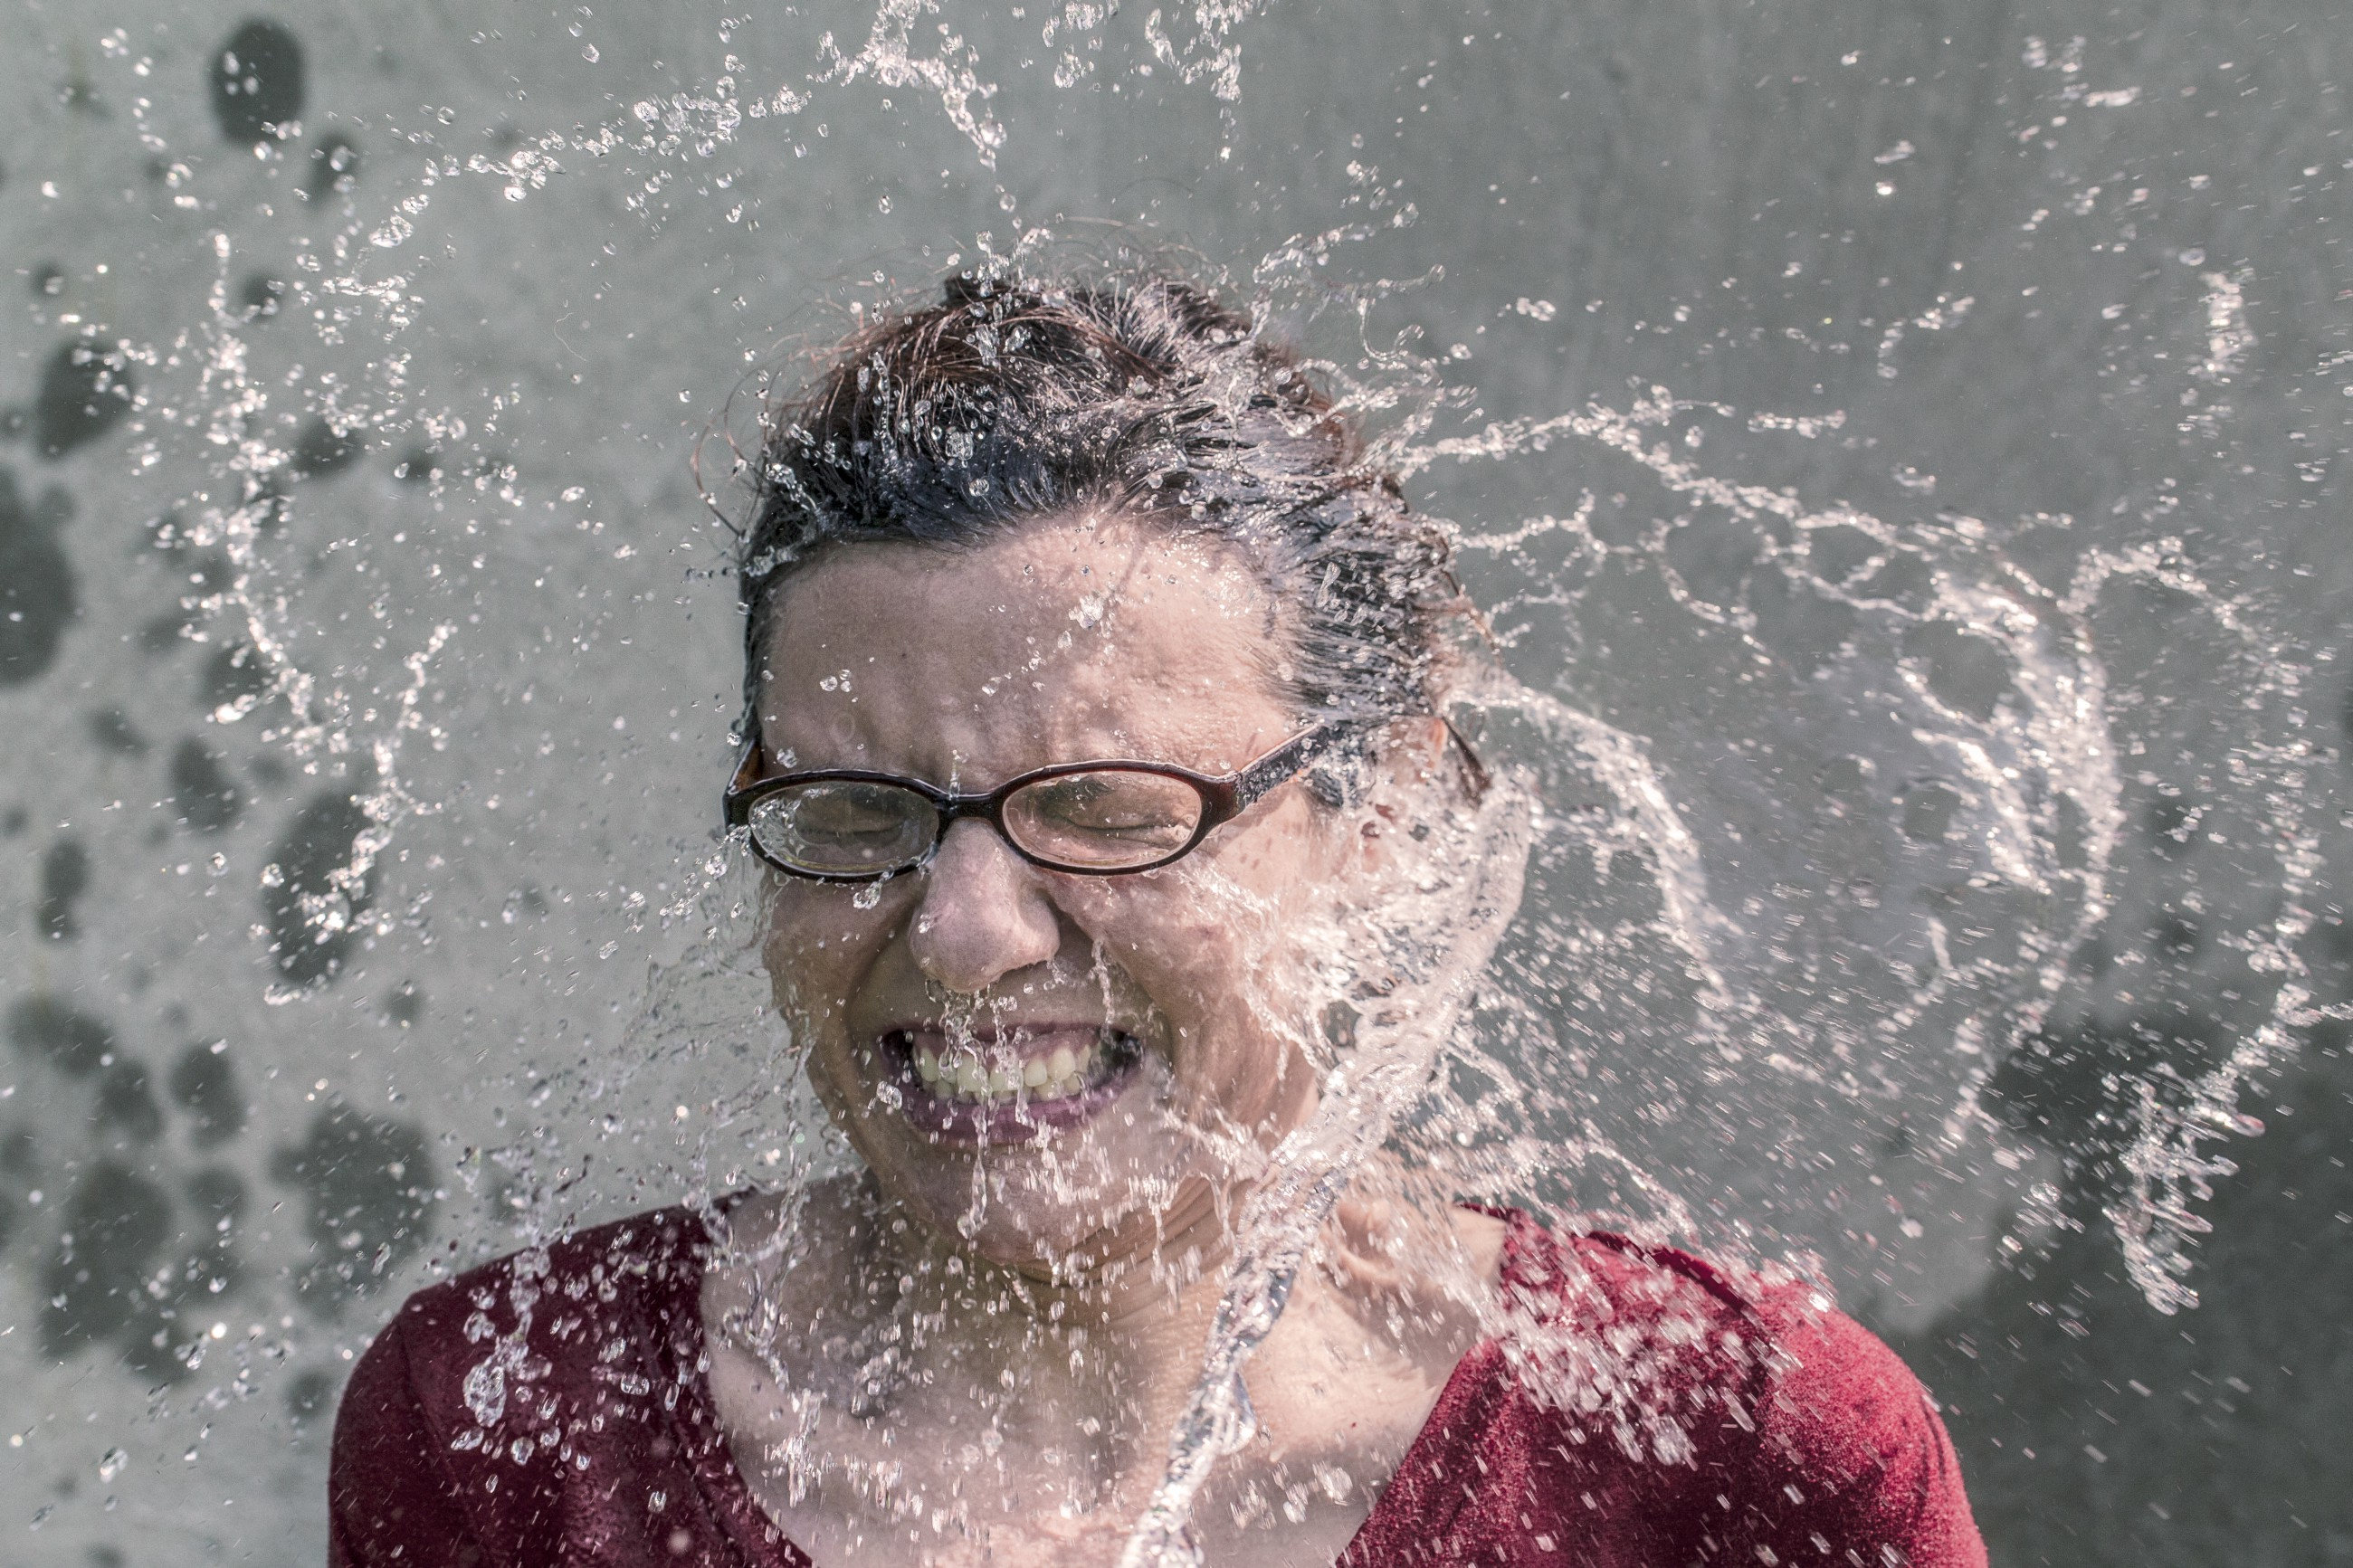 water splashing in woman's face